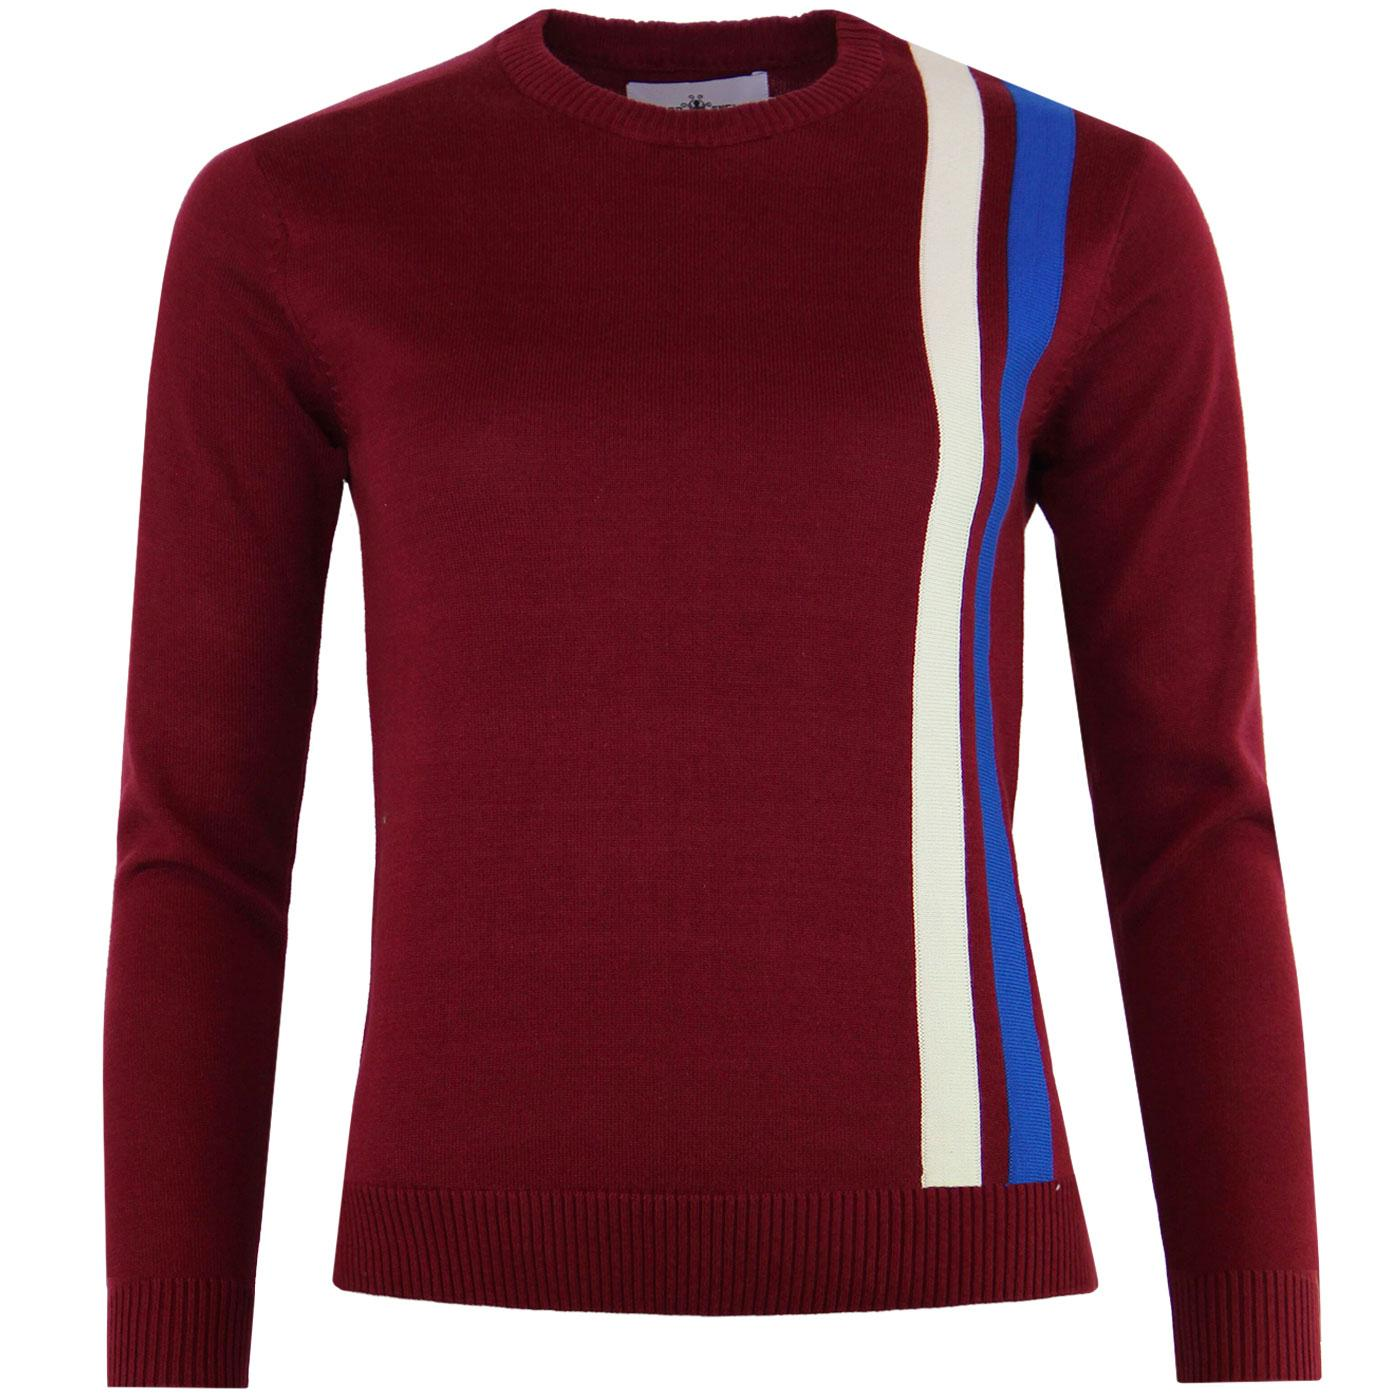 Madcap England Women's Retro Mod Racing Jumper in Zinfandel